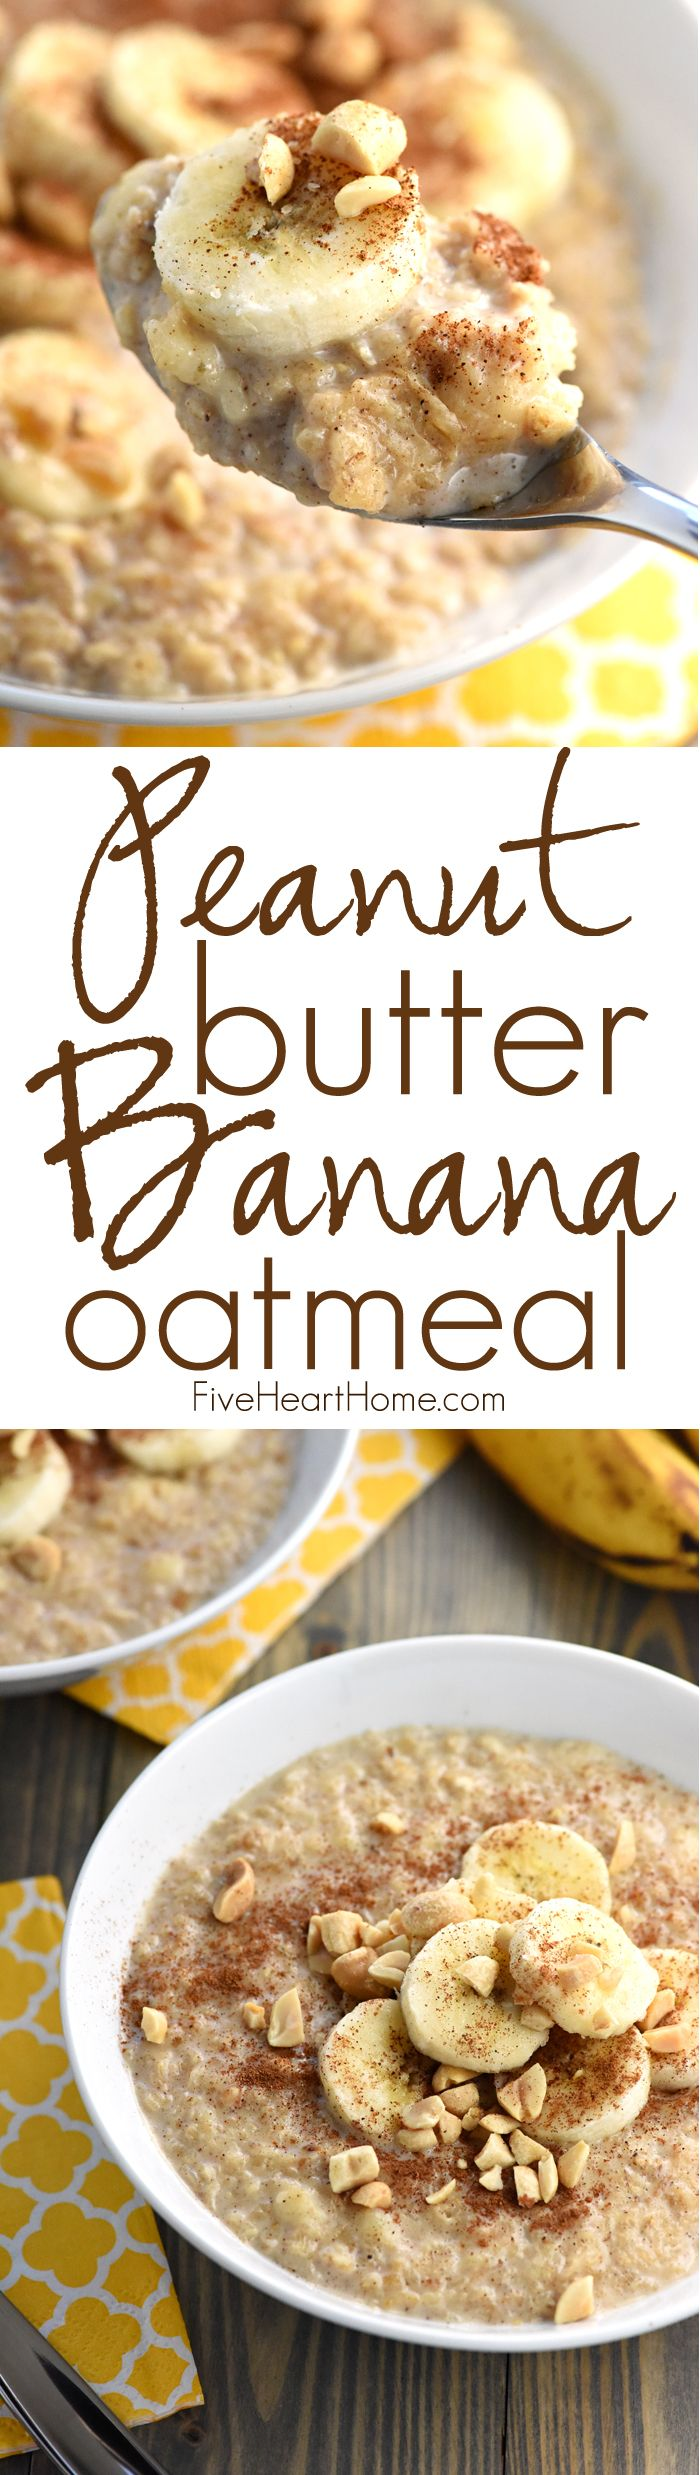 Peanut Butter Banana Oatmeal ~ in just a few short minutes, you can enjoy a hot, wholesome, homemade breakfast flavored with cinnamon, sweetened with honey, and topped with crunchy peanuts! | FiveHeartHome.com